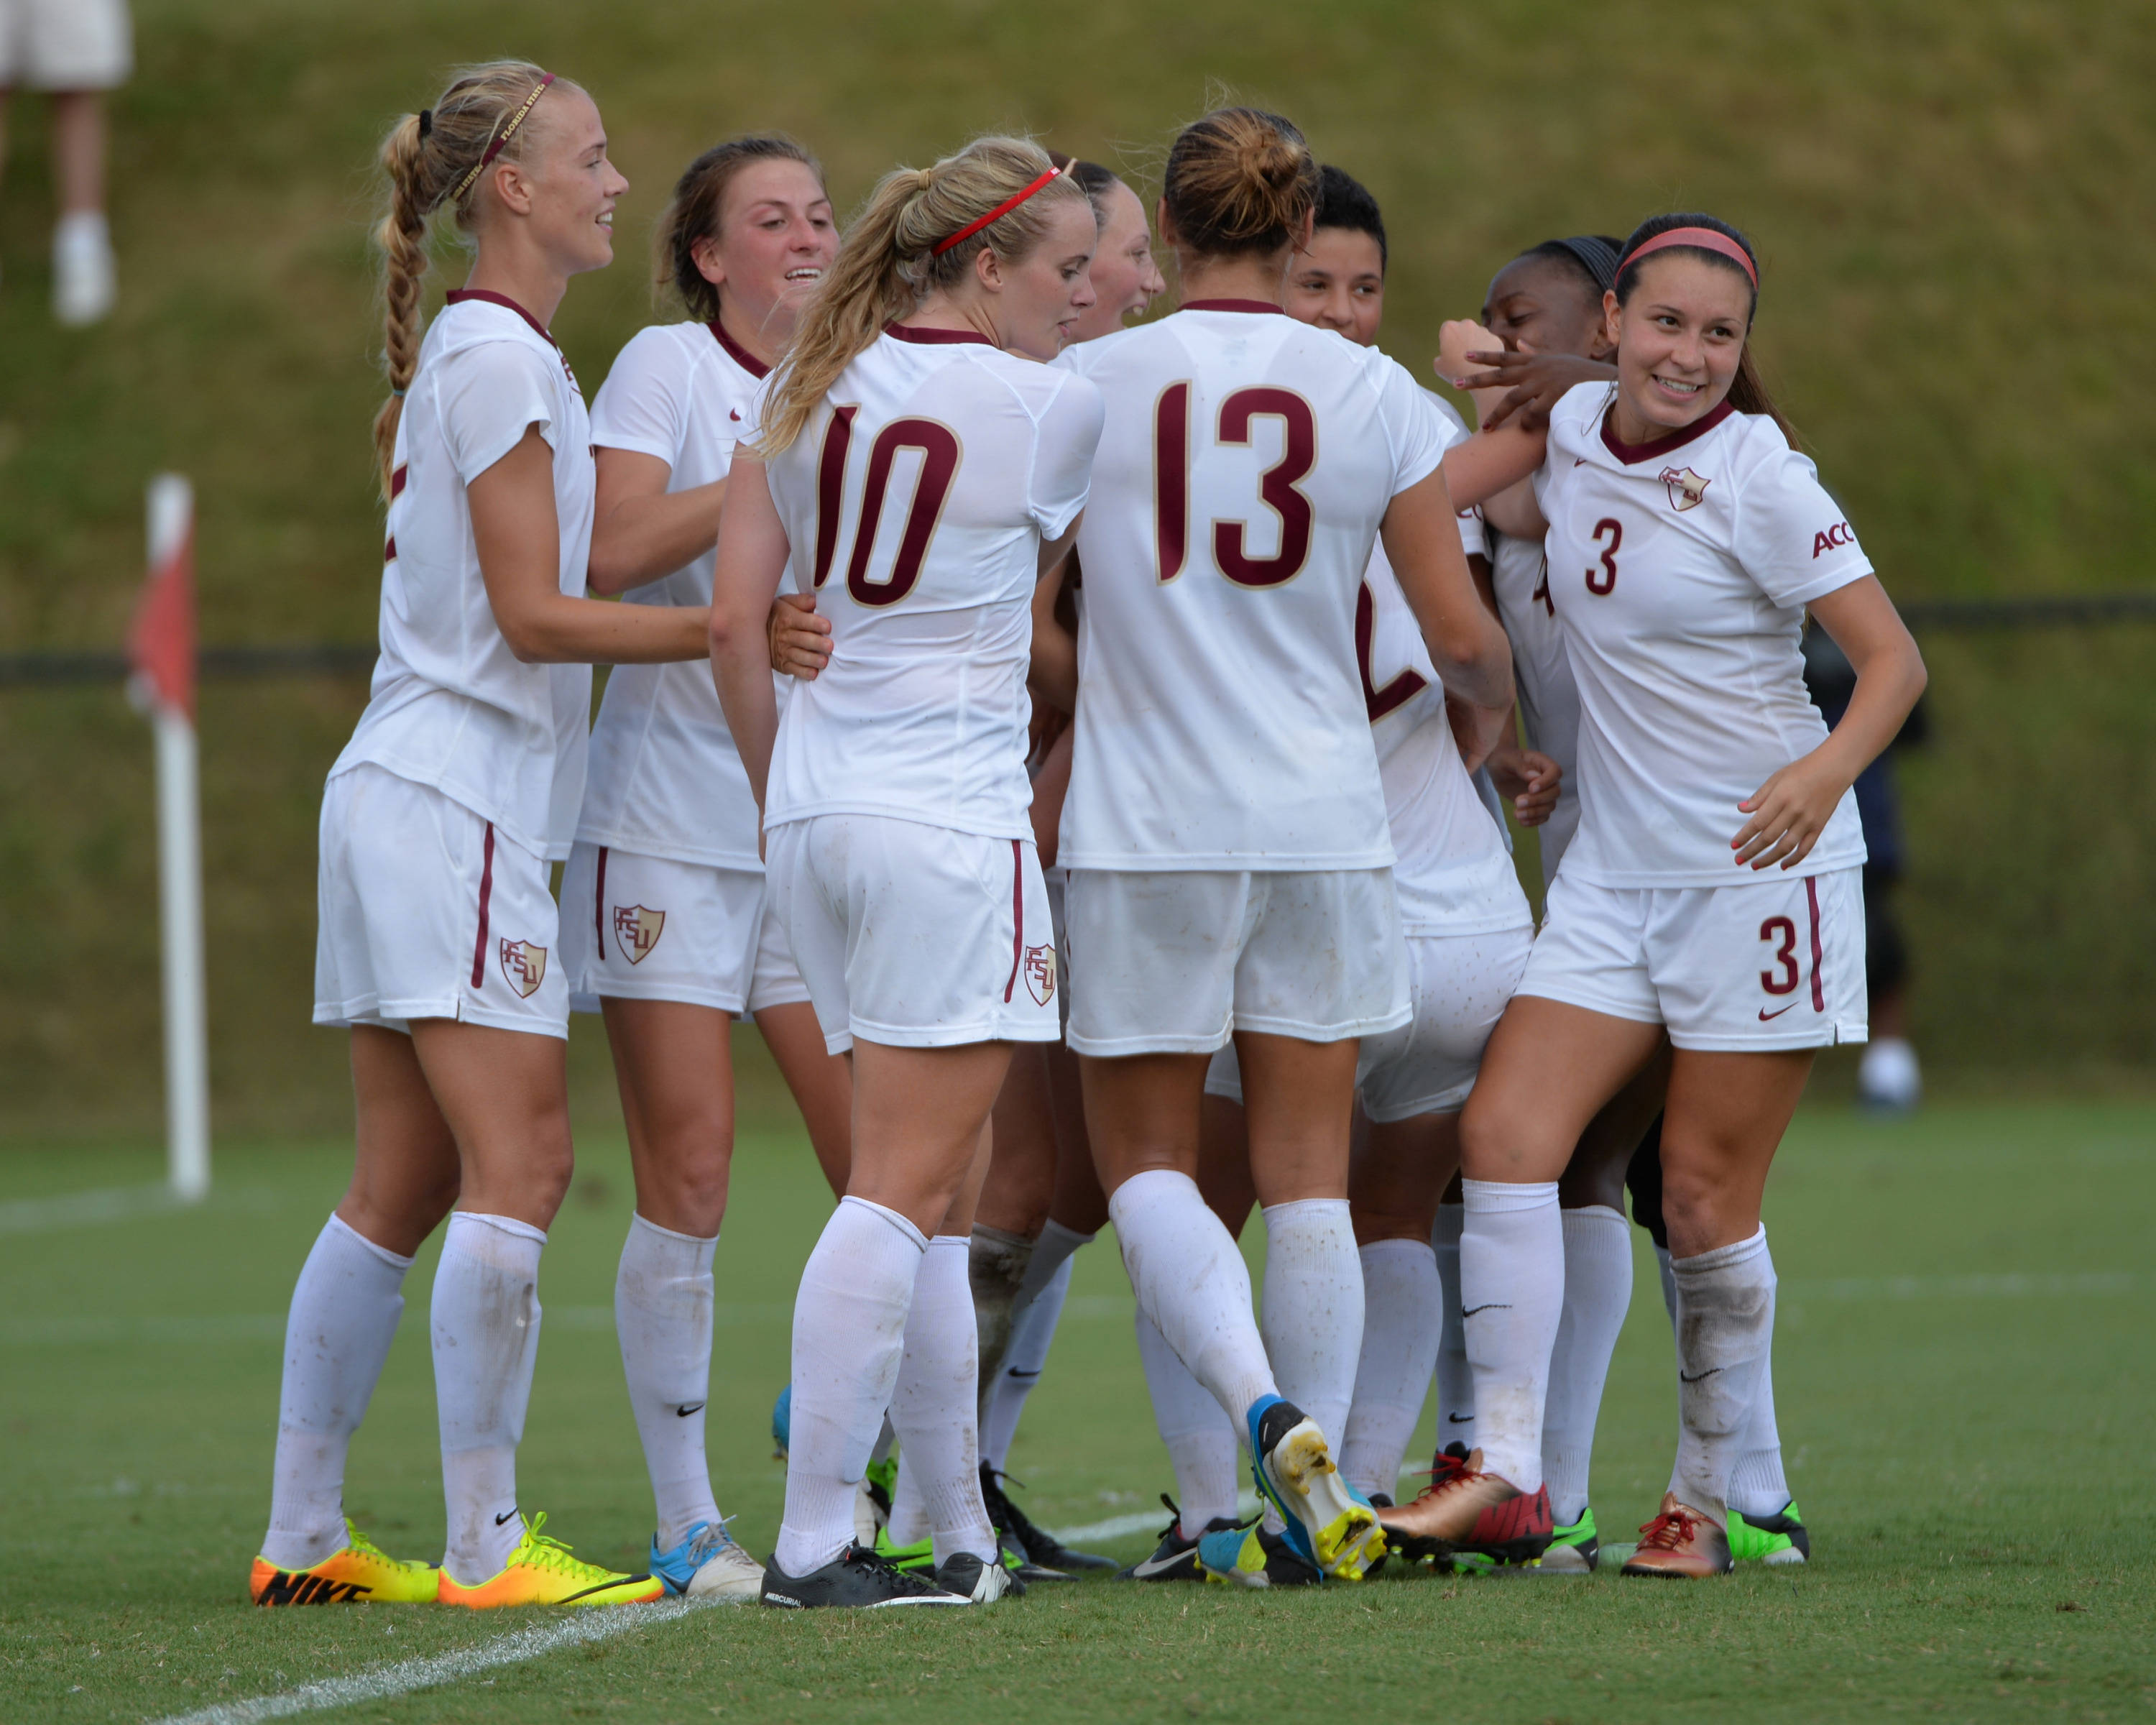 The Seminoles celebrate after Kirsten Crowley scored the game-winning goal in overtime